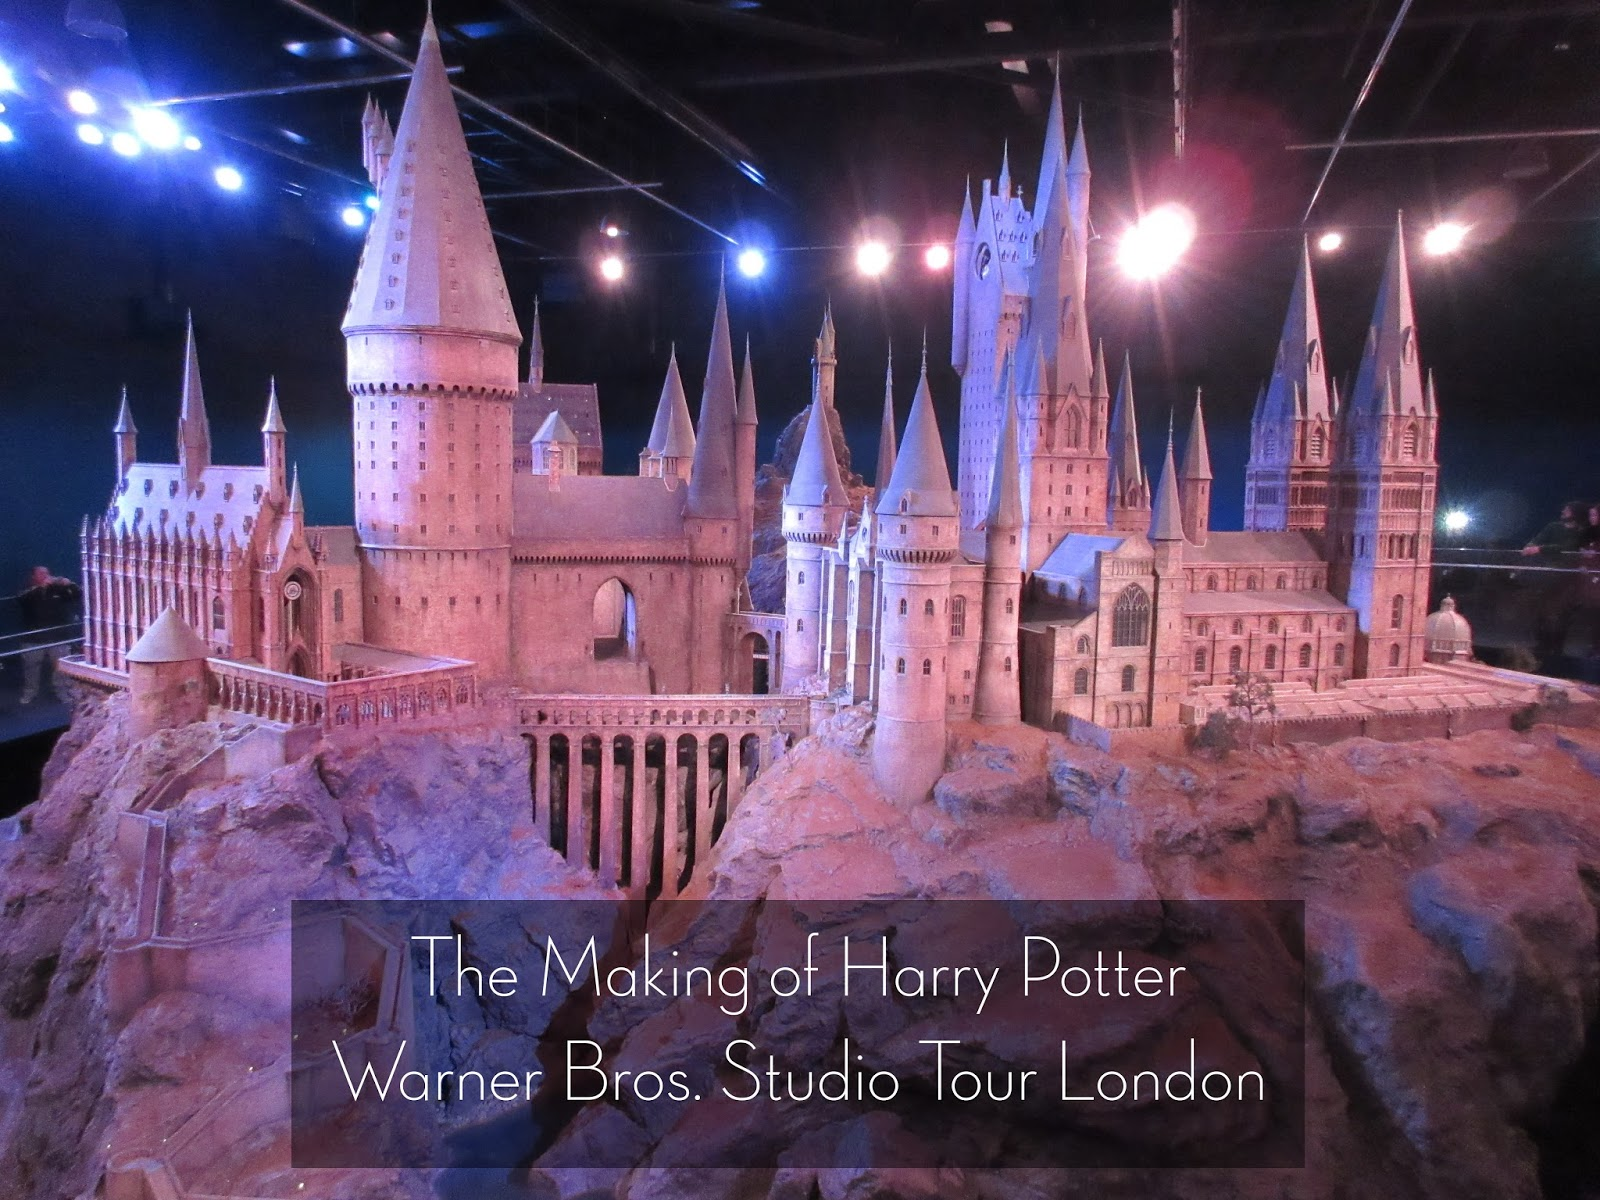 the making of harry potter warner bros. studio tour london